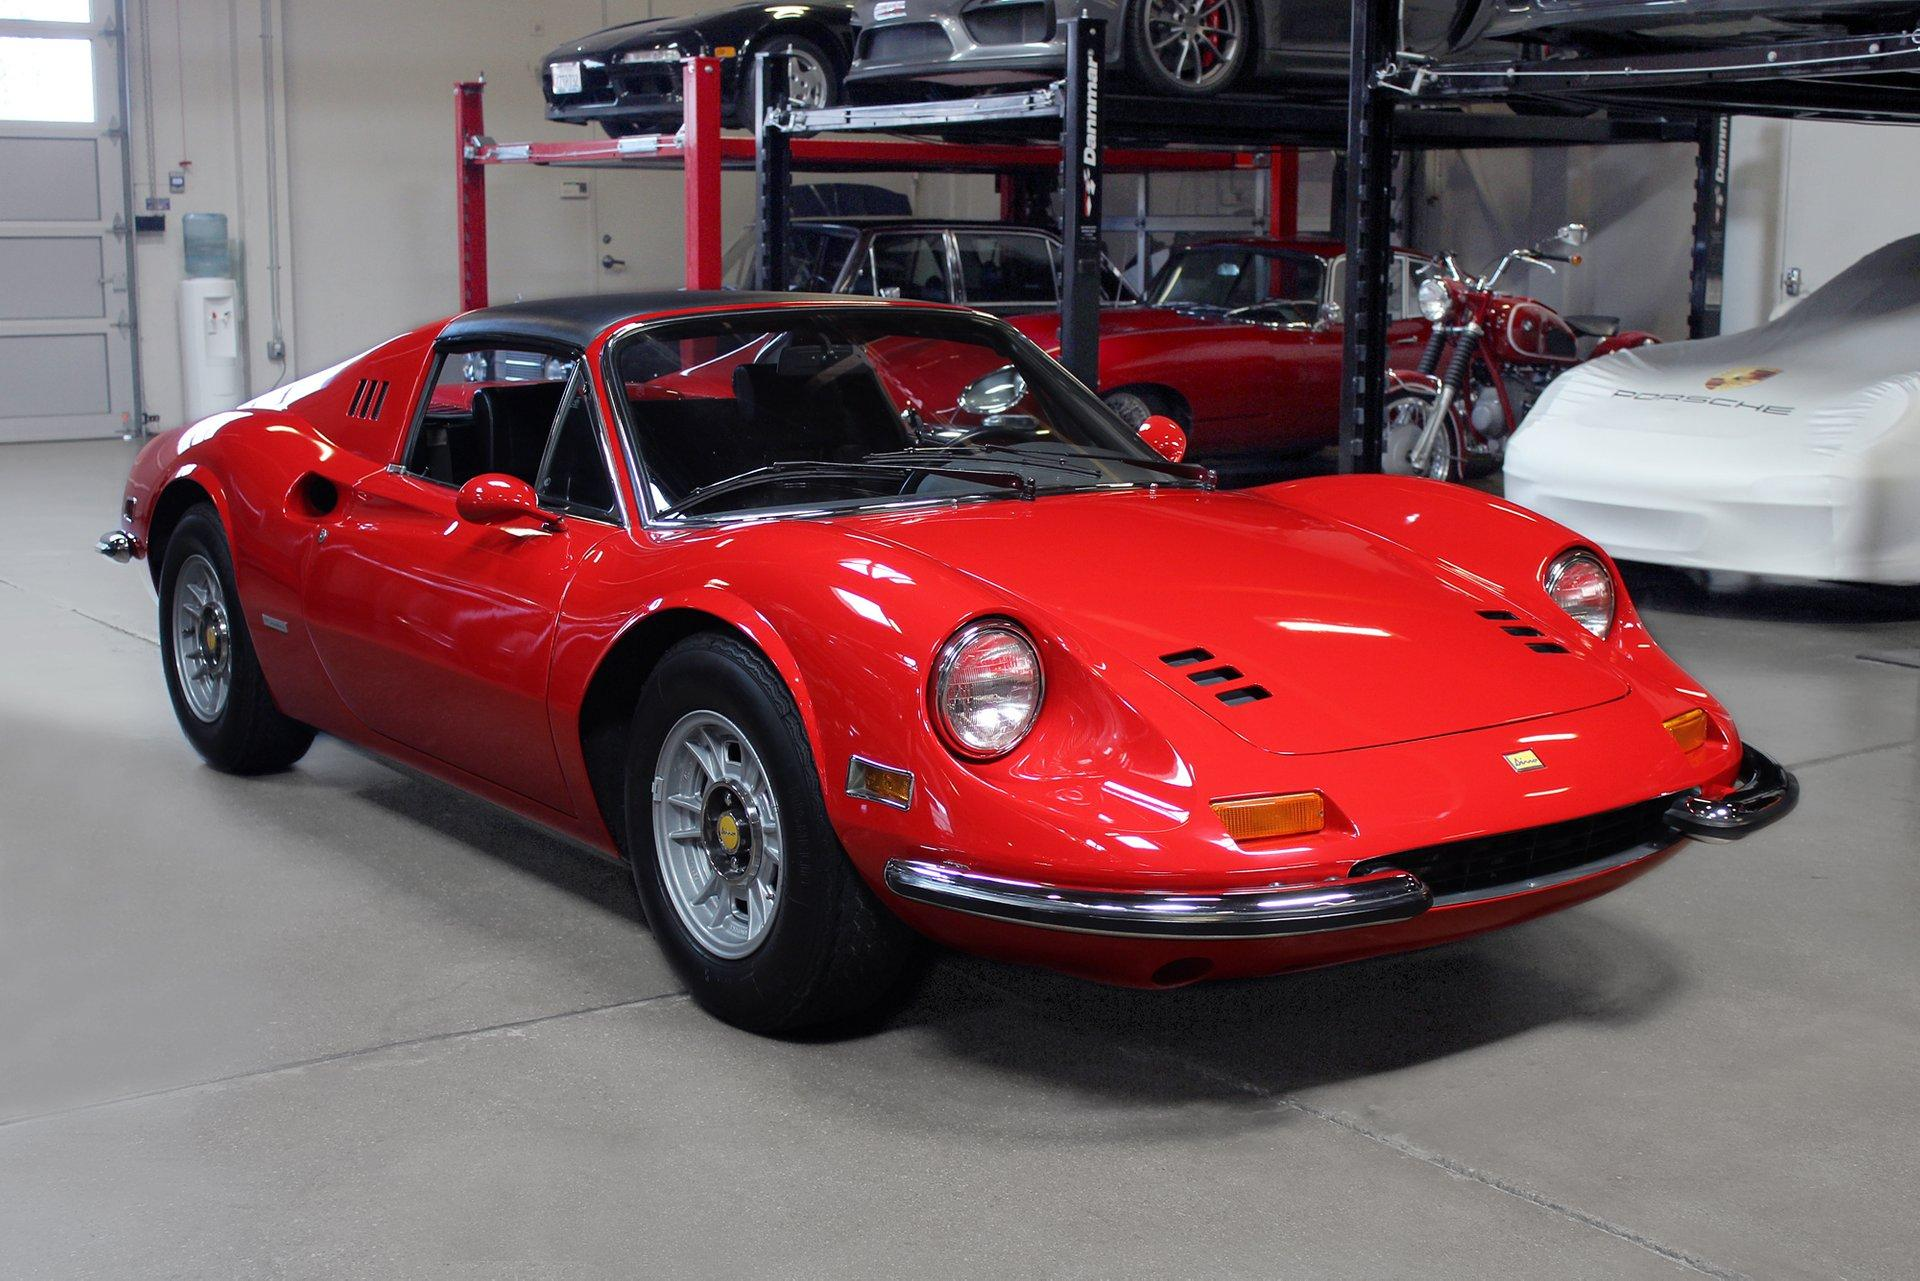 Used 1973 Ferrari 246 Dino GTS for sale $319,995 at San Francisco Sports Cars in San Carlos CA 94070 1